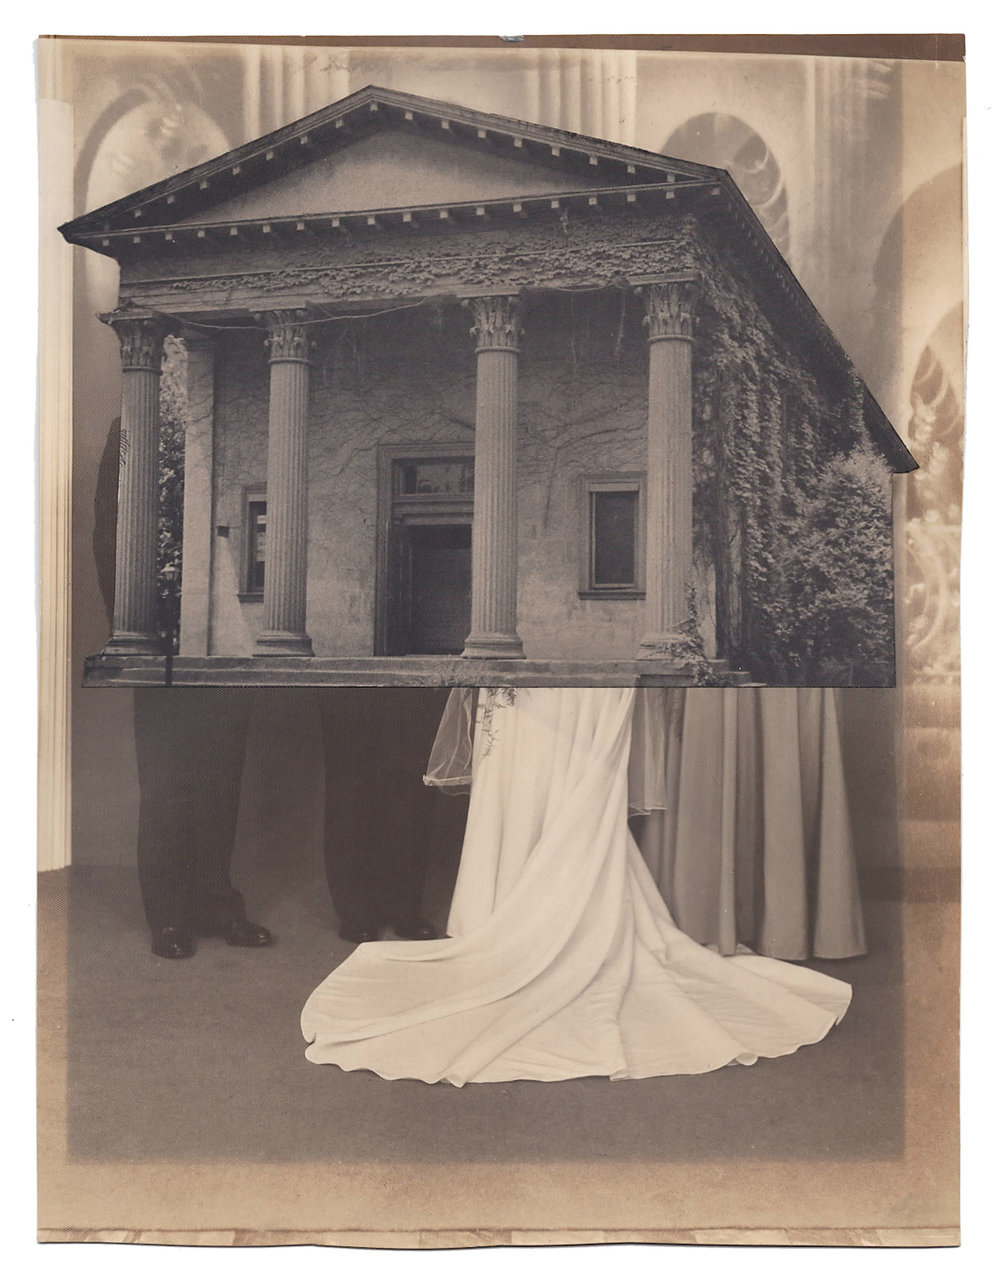 Wedding 9, 2016, Found Photographs & Collage, 8 3/4 x 6 3/4 inches